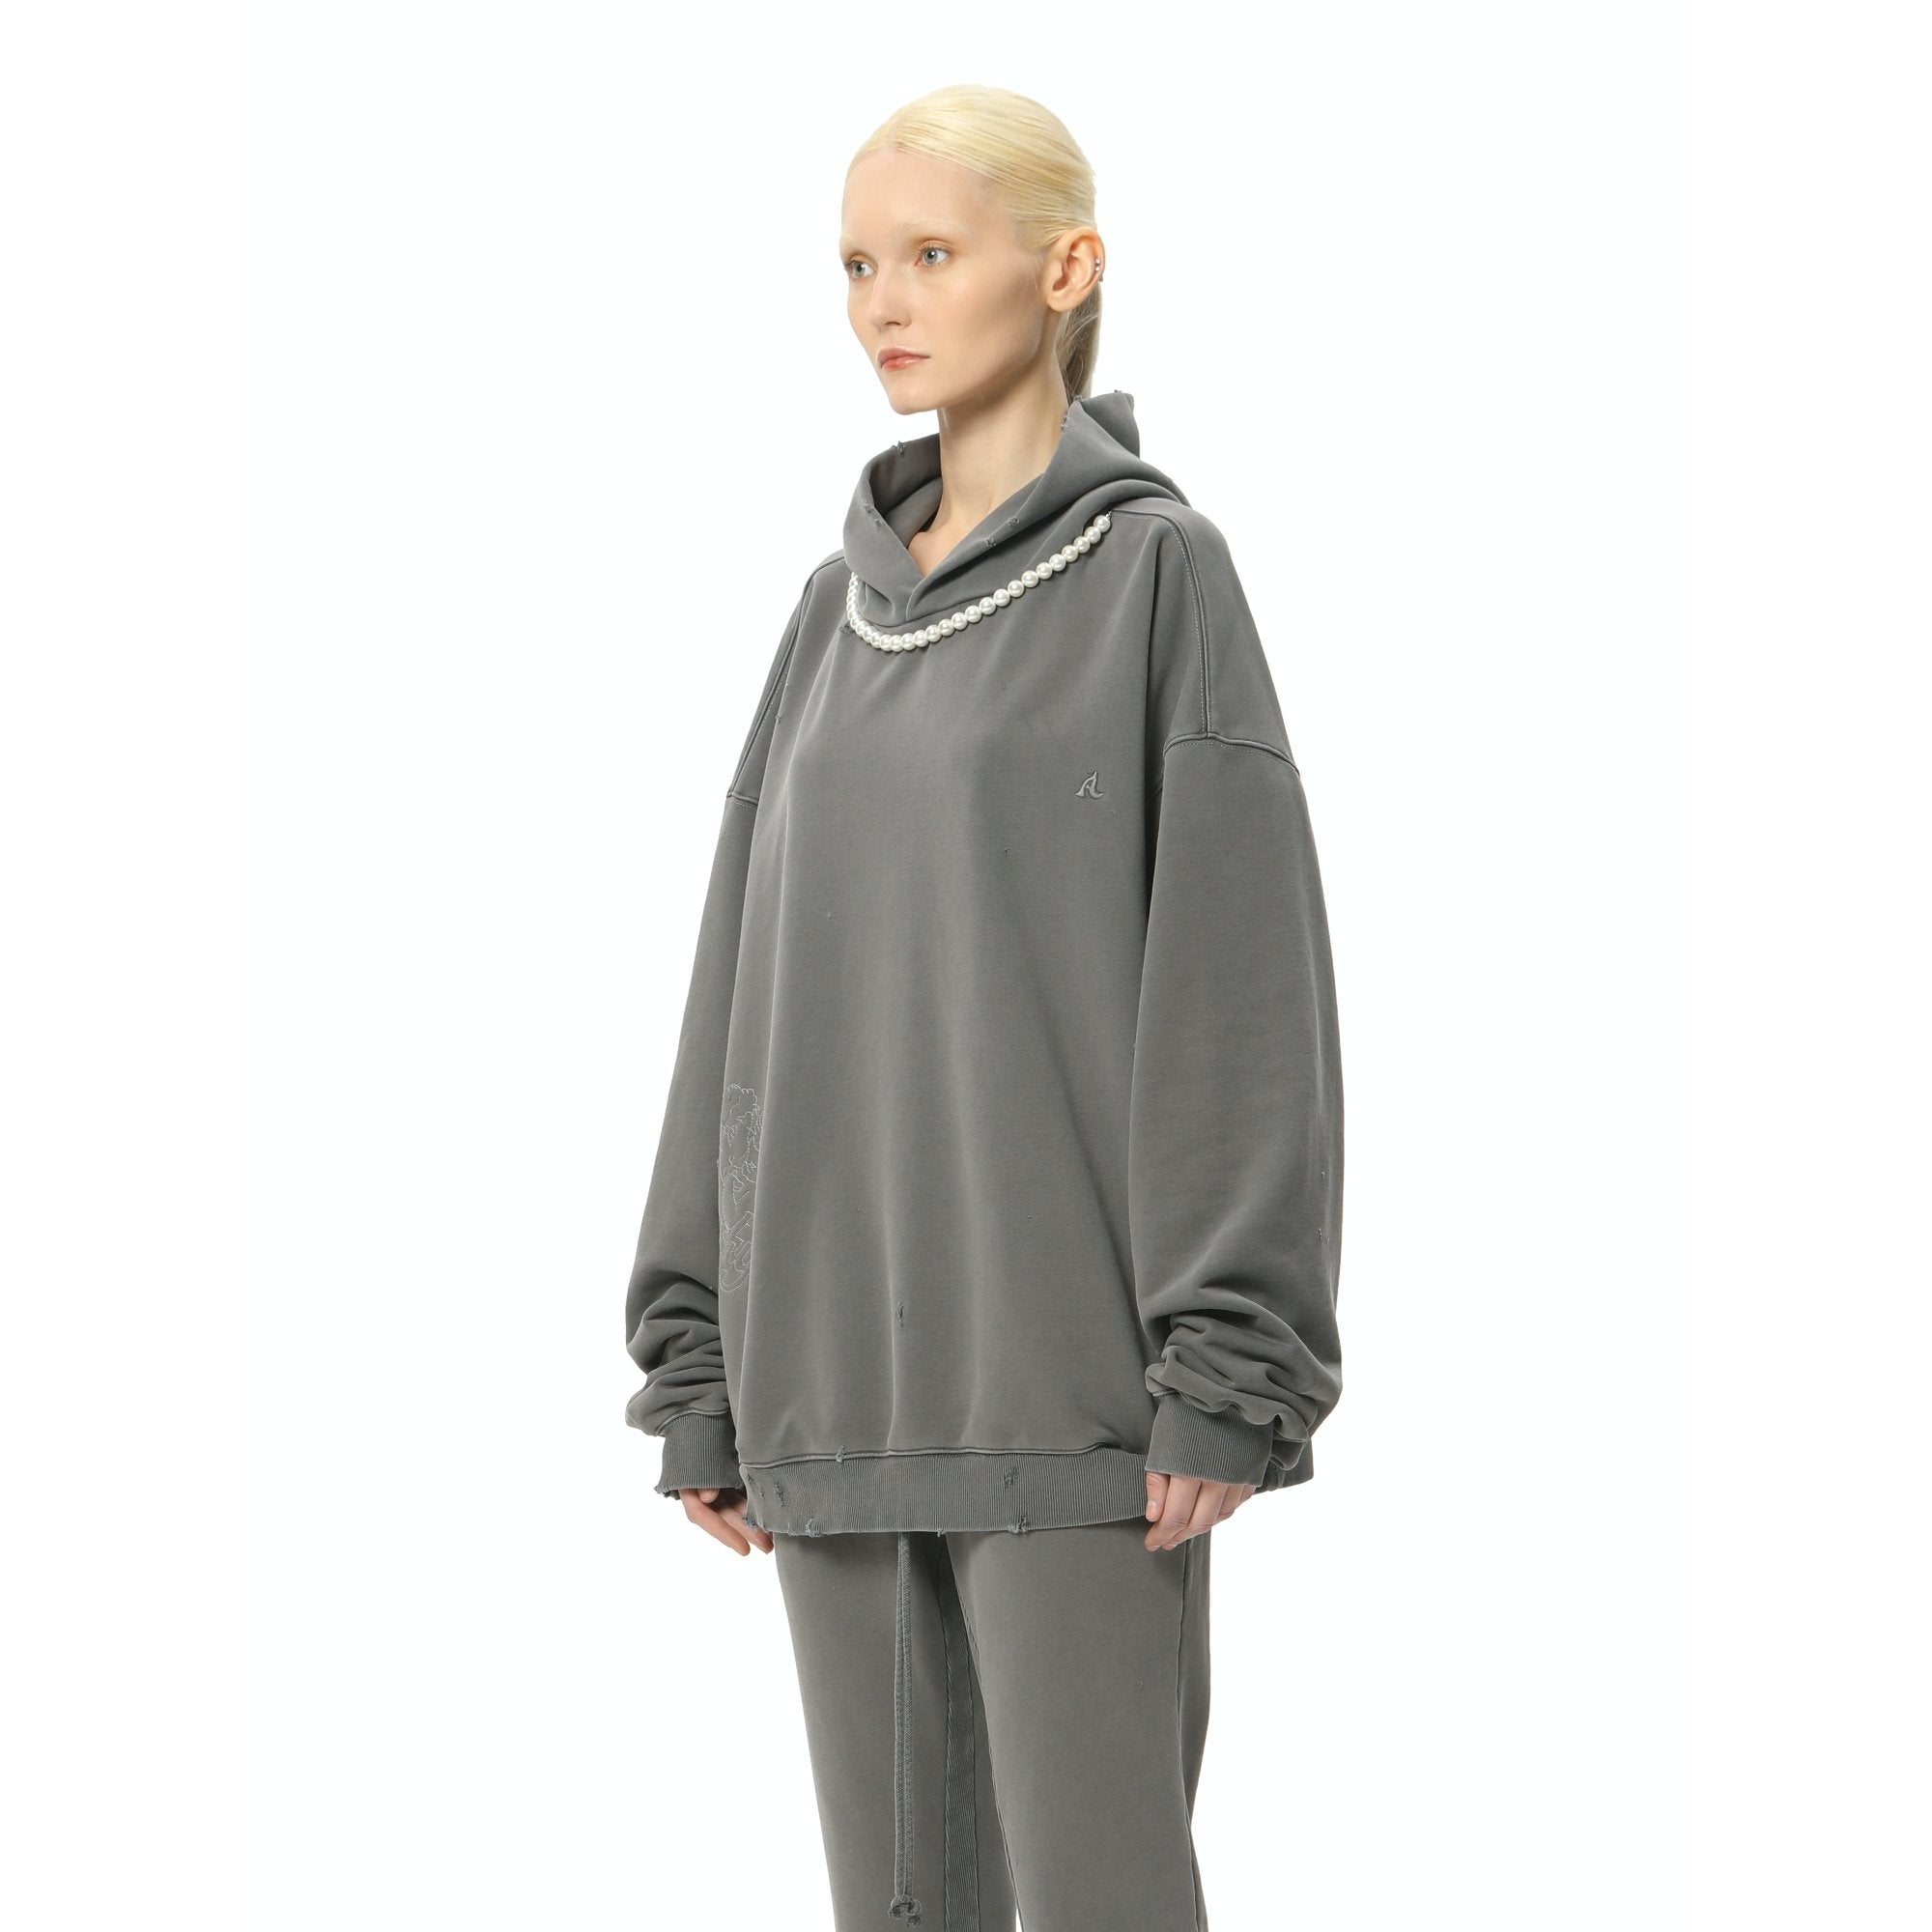 AIN'T SHY Pearl Necklace Hoodie Cold Ash | MADA IN CHINA